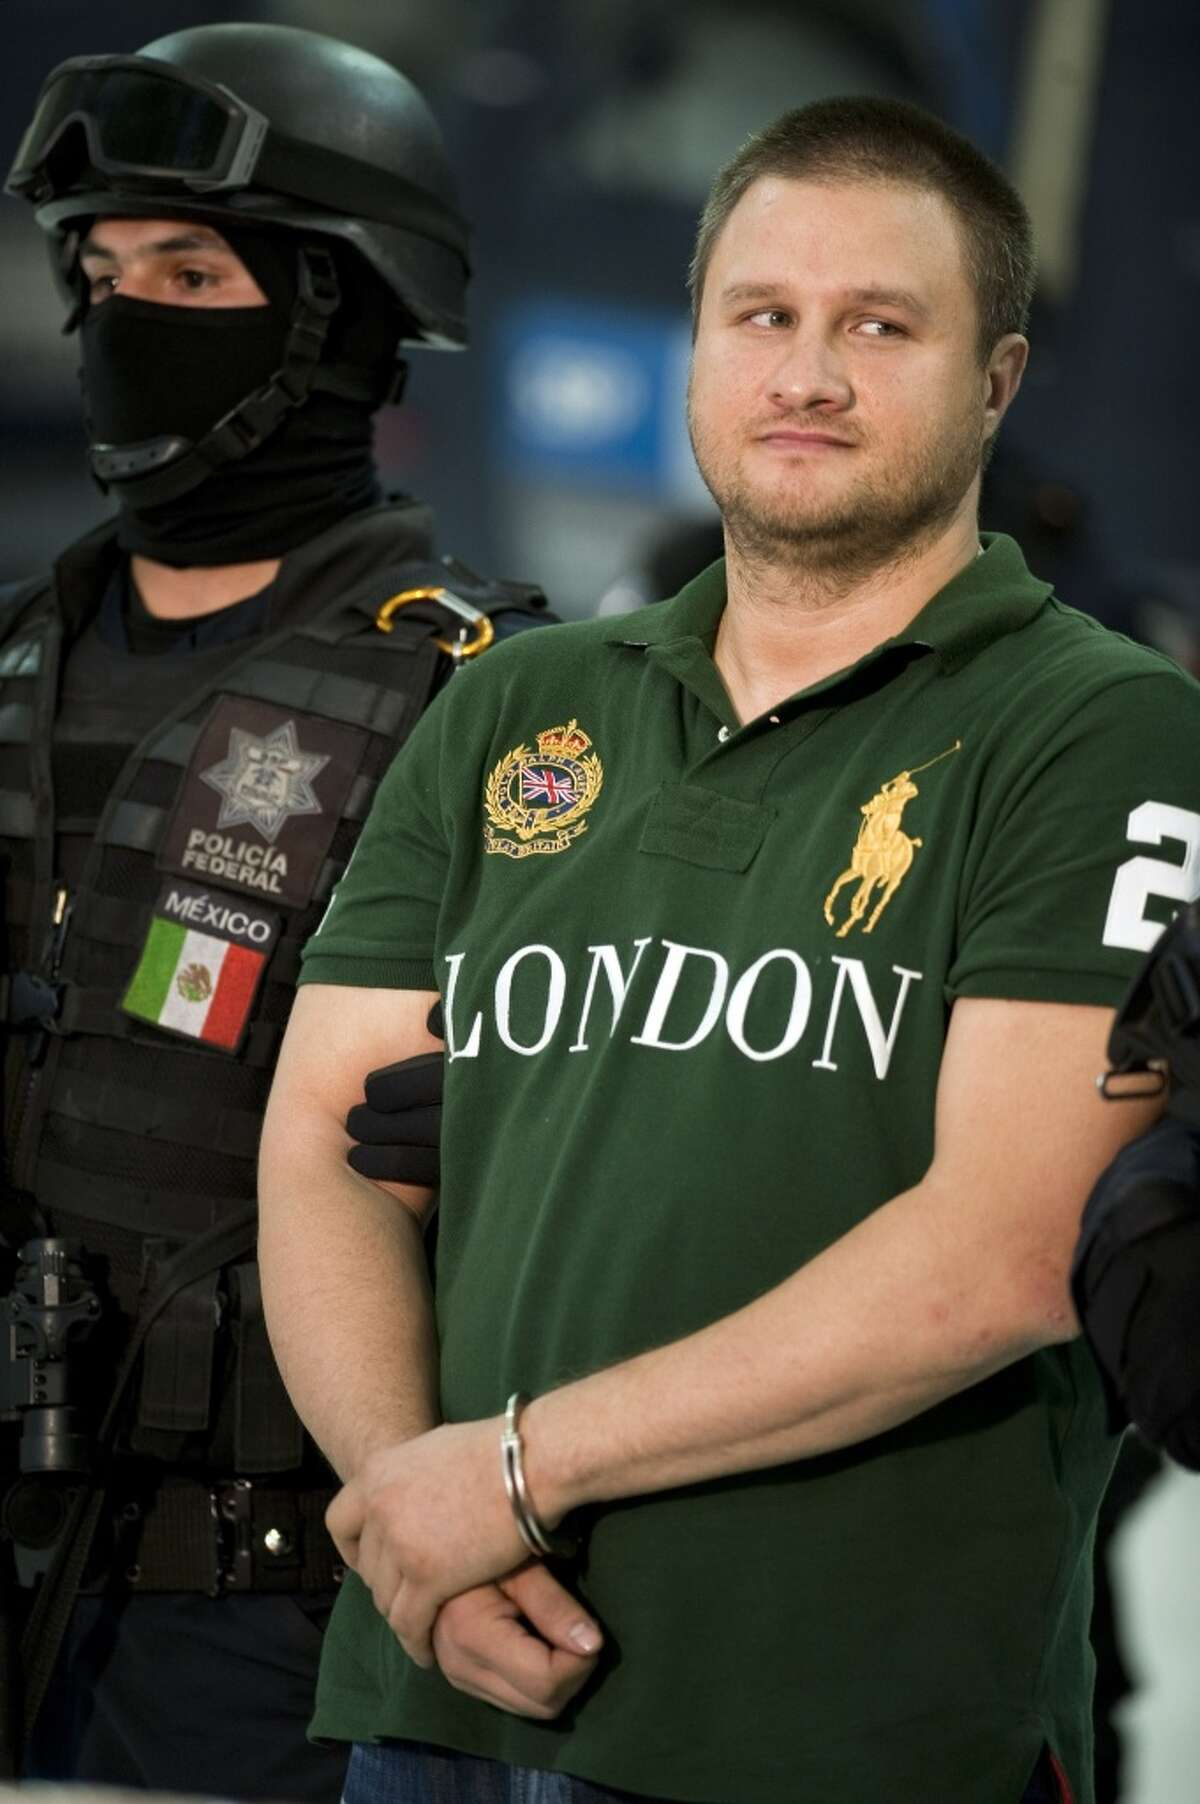 Edgar Valdez Villareal aka 'La Barbie' of the Beltran Leyva drug cartel, is presented to the press at the Federal Police headquarters in Mexico City, on August 31, 2010. Mexican authorities on Monday announced the capture of one of the country's most sought after drug kingpins, US-born Valdez Villarreal, known as 'the Barbie' for his fair complexion. Valdez was detained in a police operation in central Mexico, following intelligence work which began in June 2009. The 37-year-old was a key lieutenant of Arturo Beltran Leyva, who headed the cartel that bears his name and was Mexico's third most-wanted man until his December 2009 death in a military operation. AFP PHOTO/Alfredo Estrella (Photo credit should read ALFREDO ESTRELLA/AFP/Getty Images)